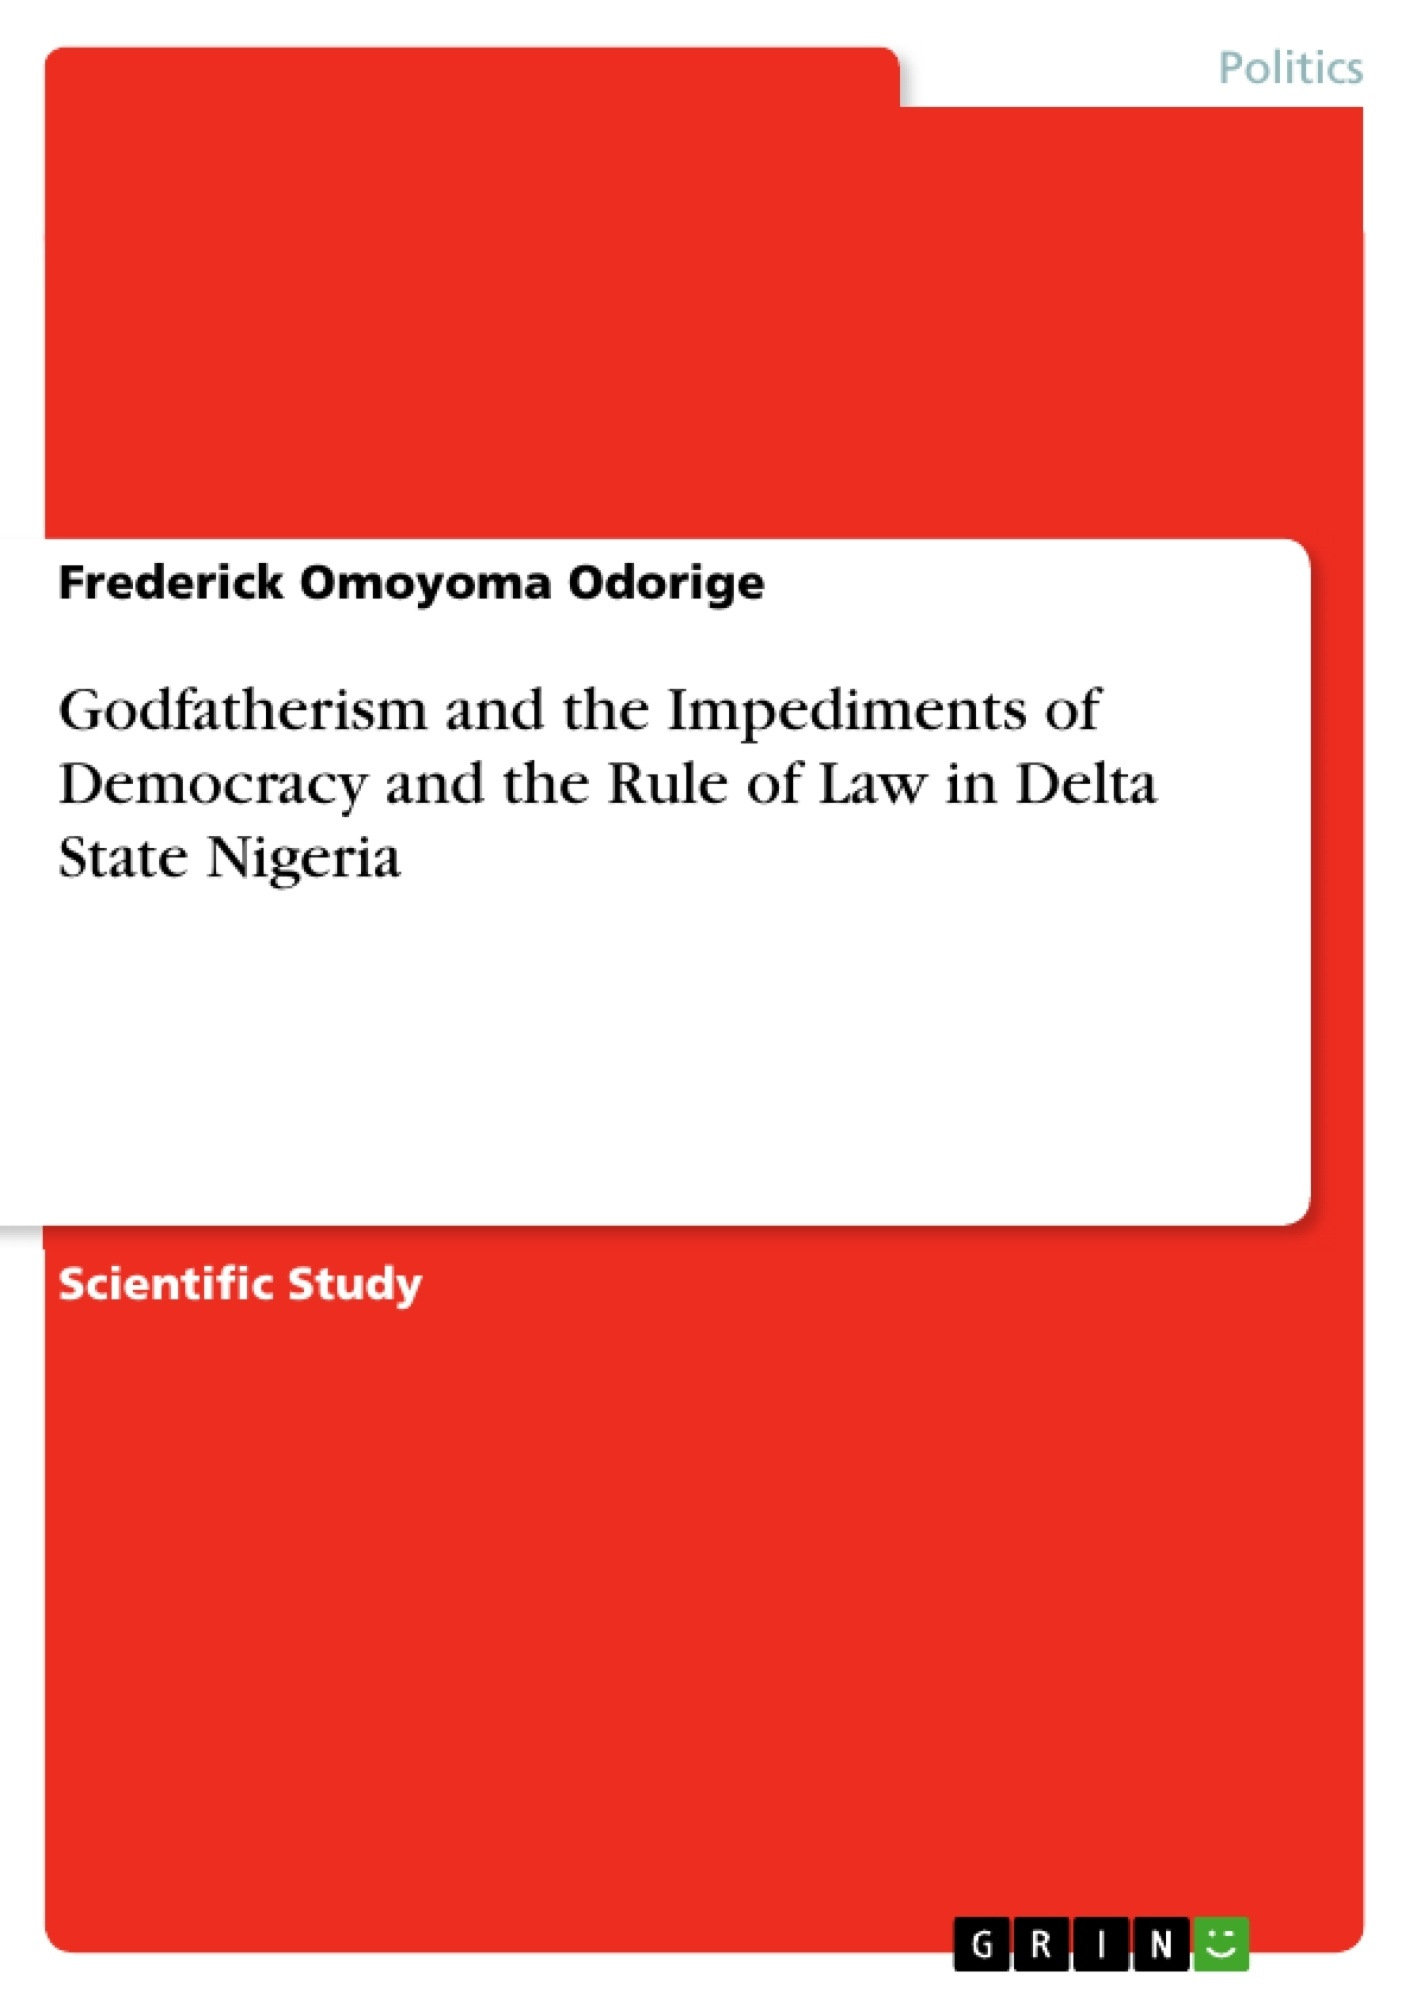 GRIN - Godfatherism and the Impediments of Democracy and the Rule of Law in  Delta State Nigeria